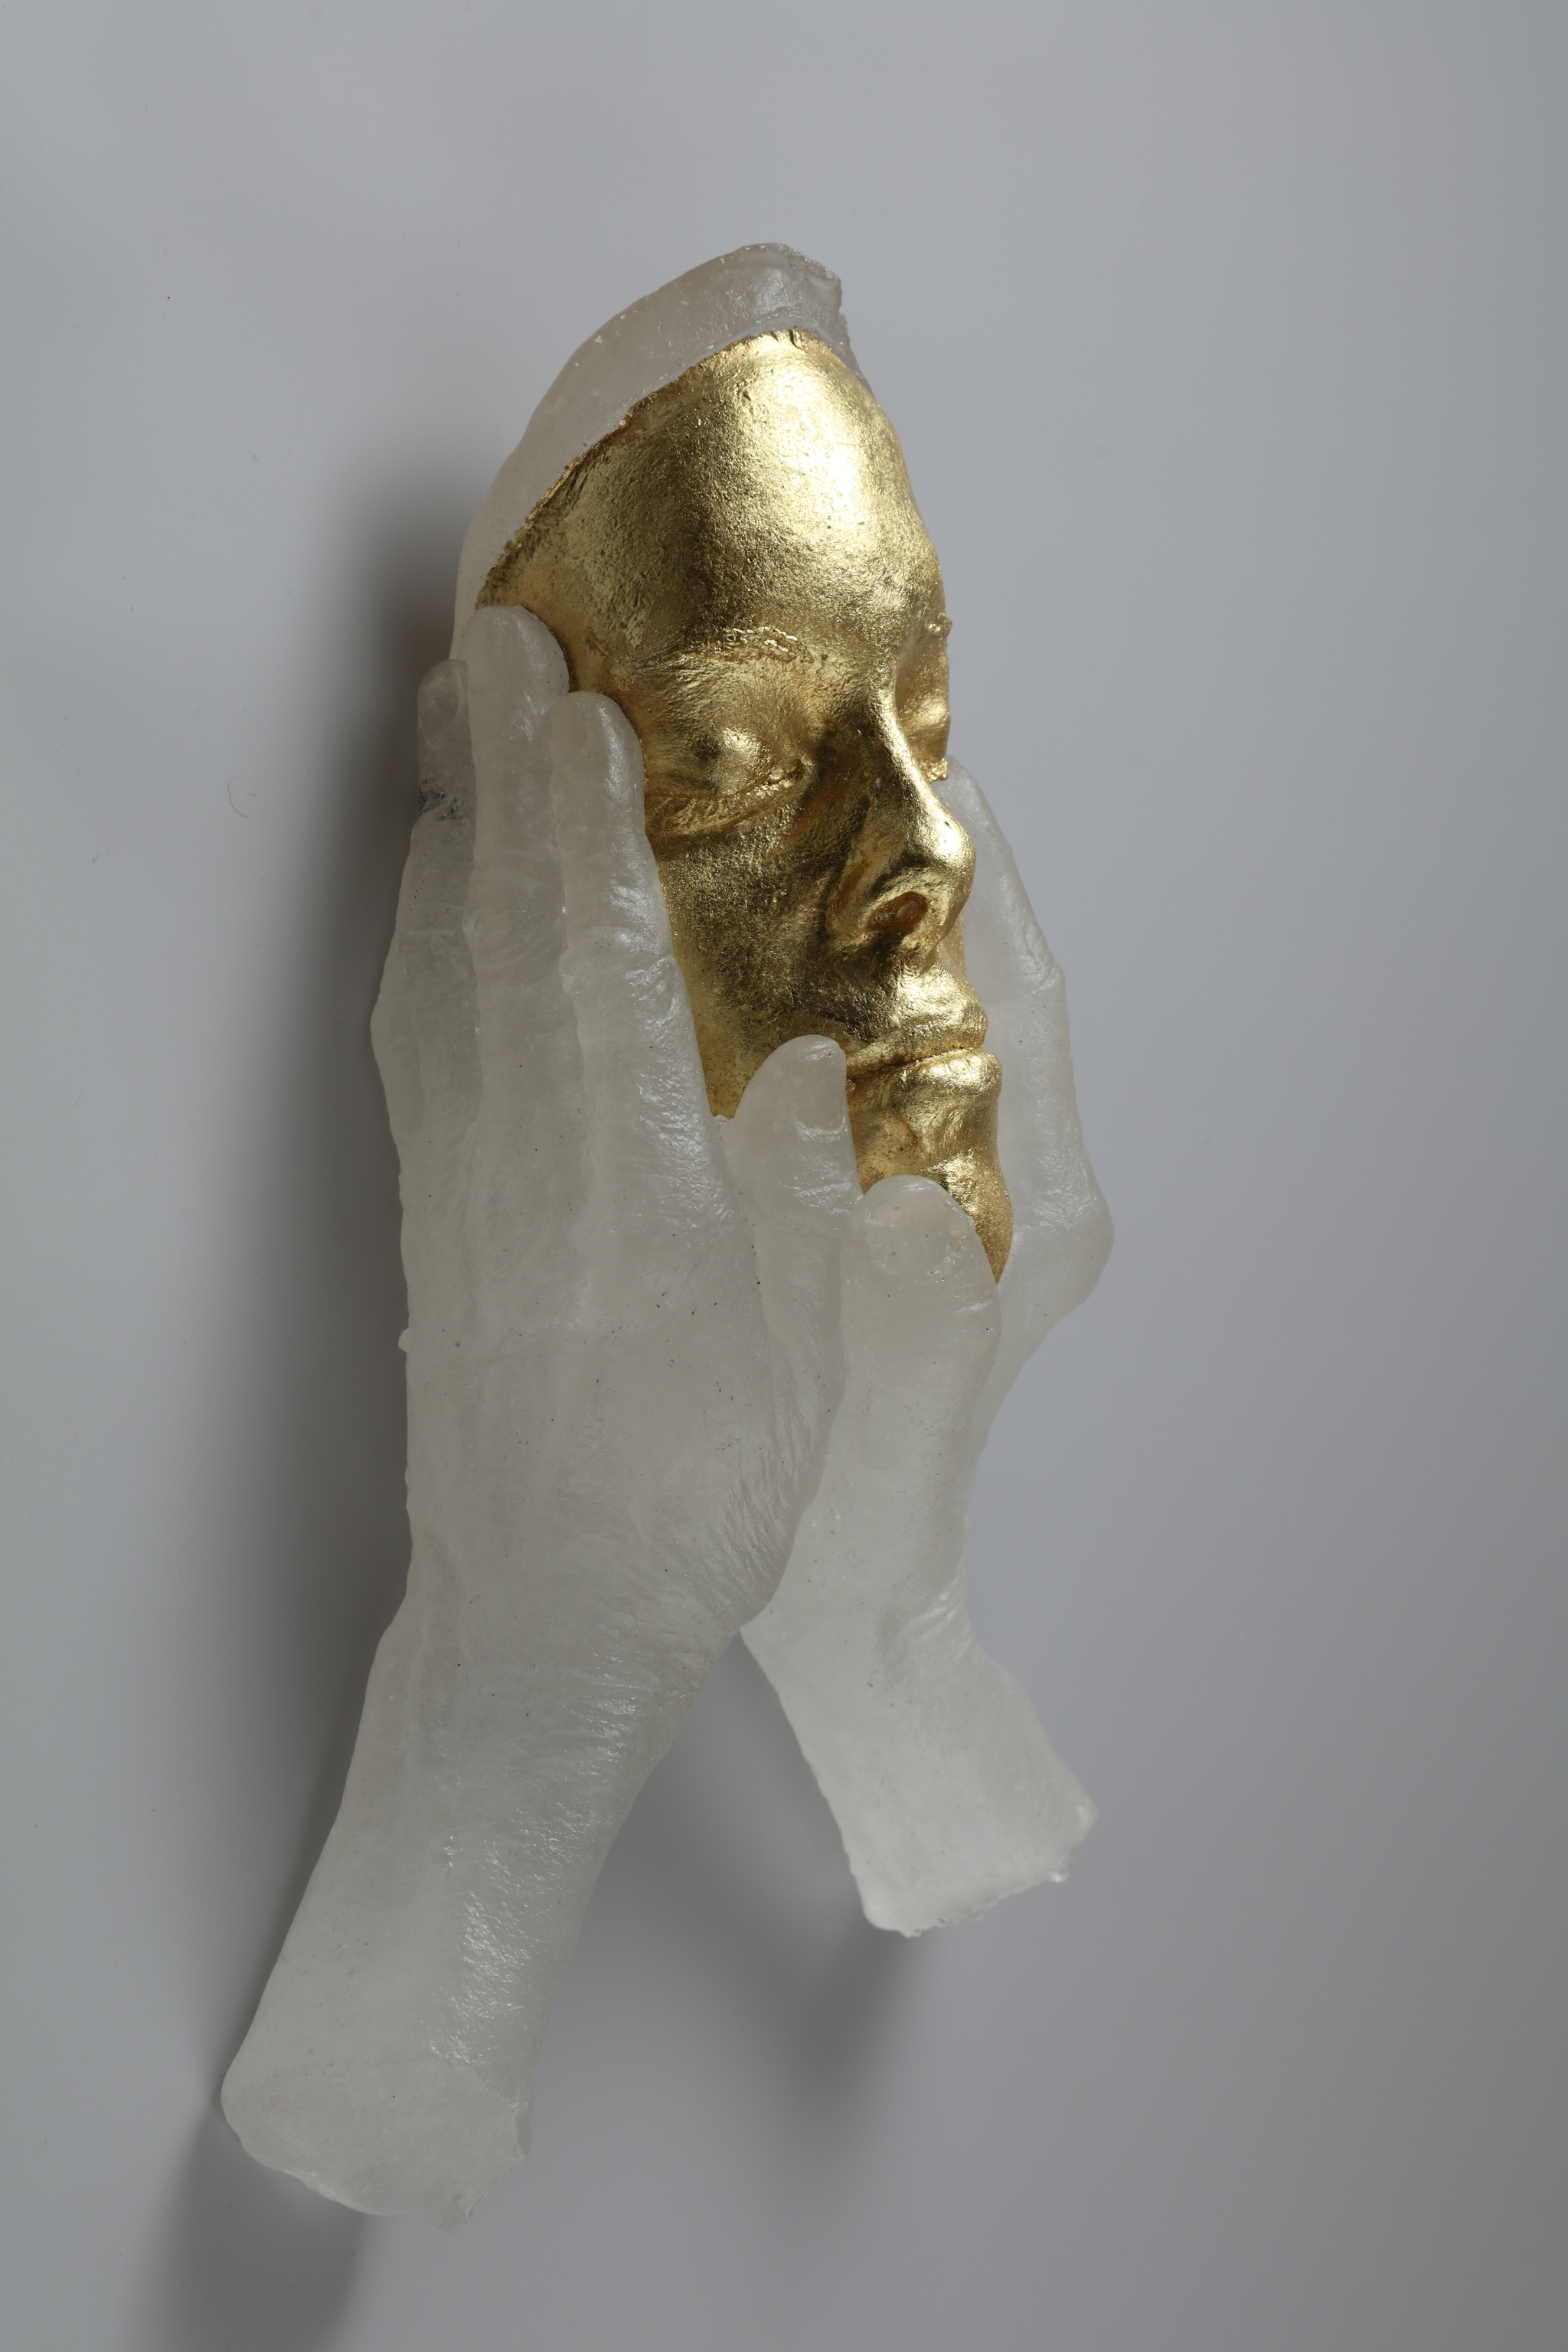 Sculpture of young face with old hands on it.